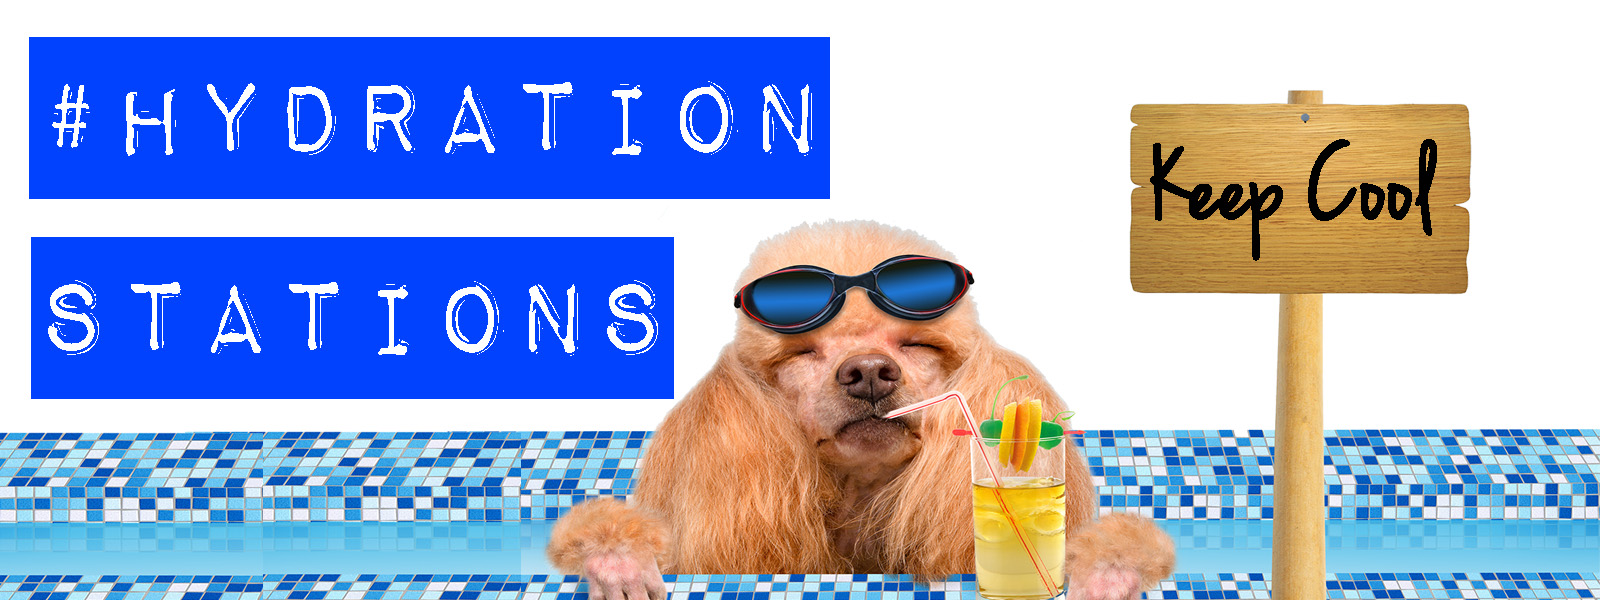 There will be cool down stations throughout the property to make sure fido is kept cool as a cucumber during the day